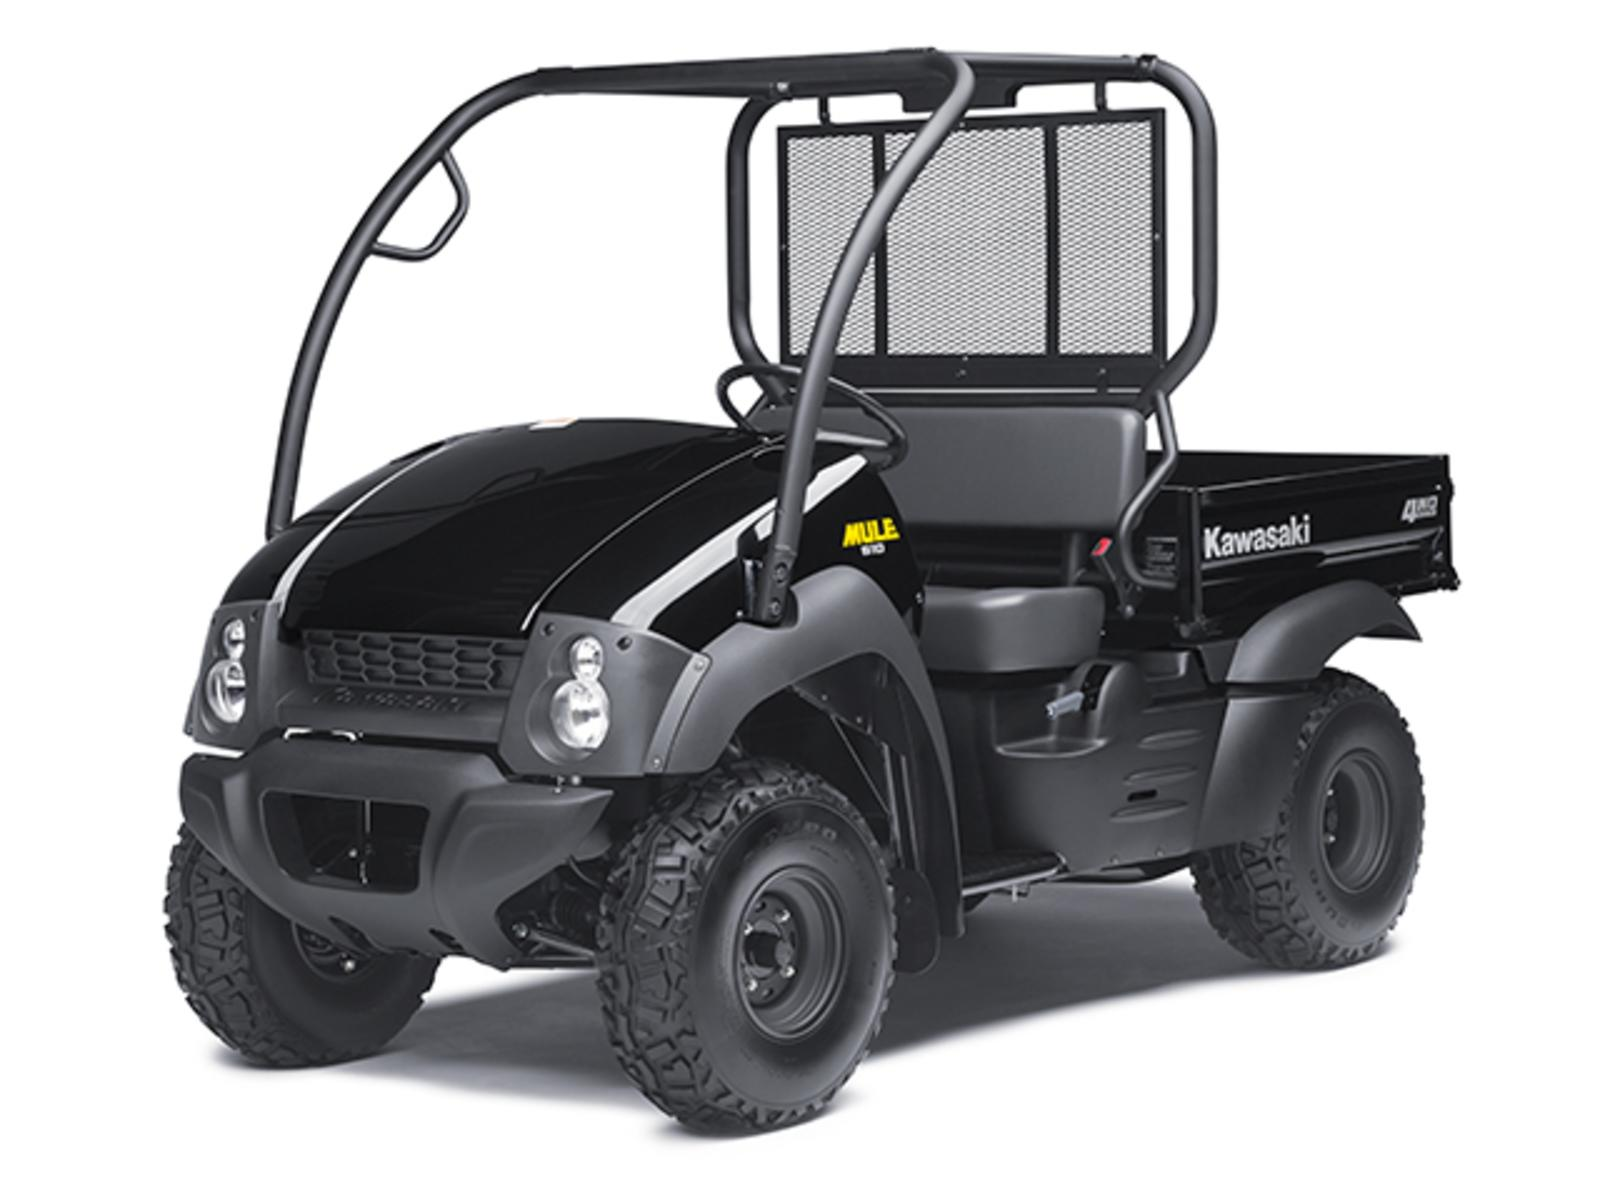 Kawasaki Mule 610 4x4 Review